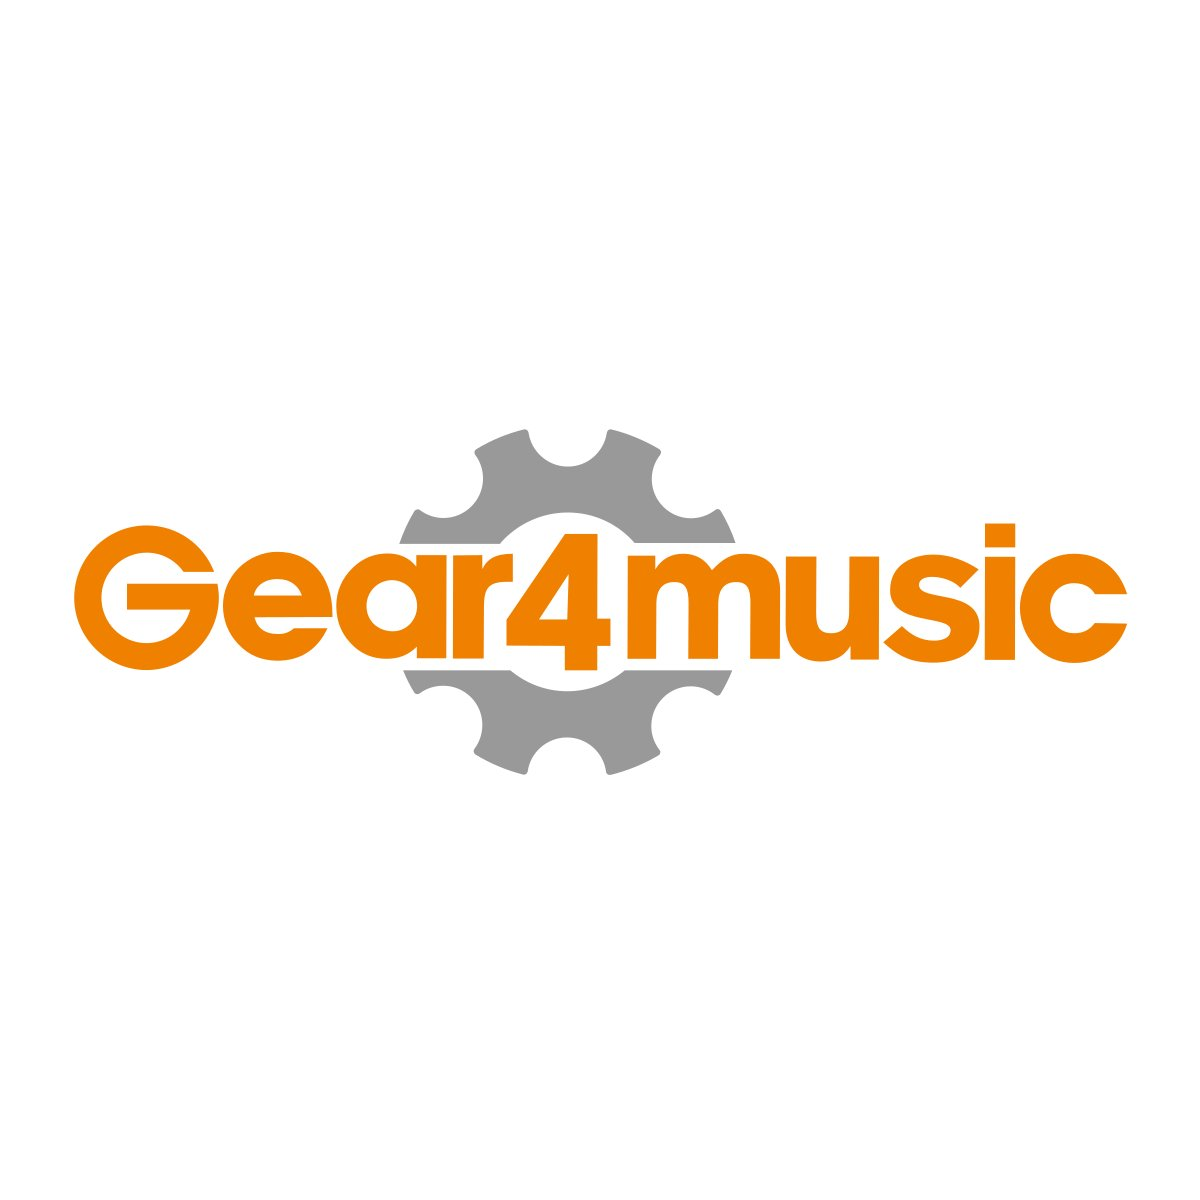 Armónicas de Blues de Gear4music - Plateado